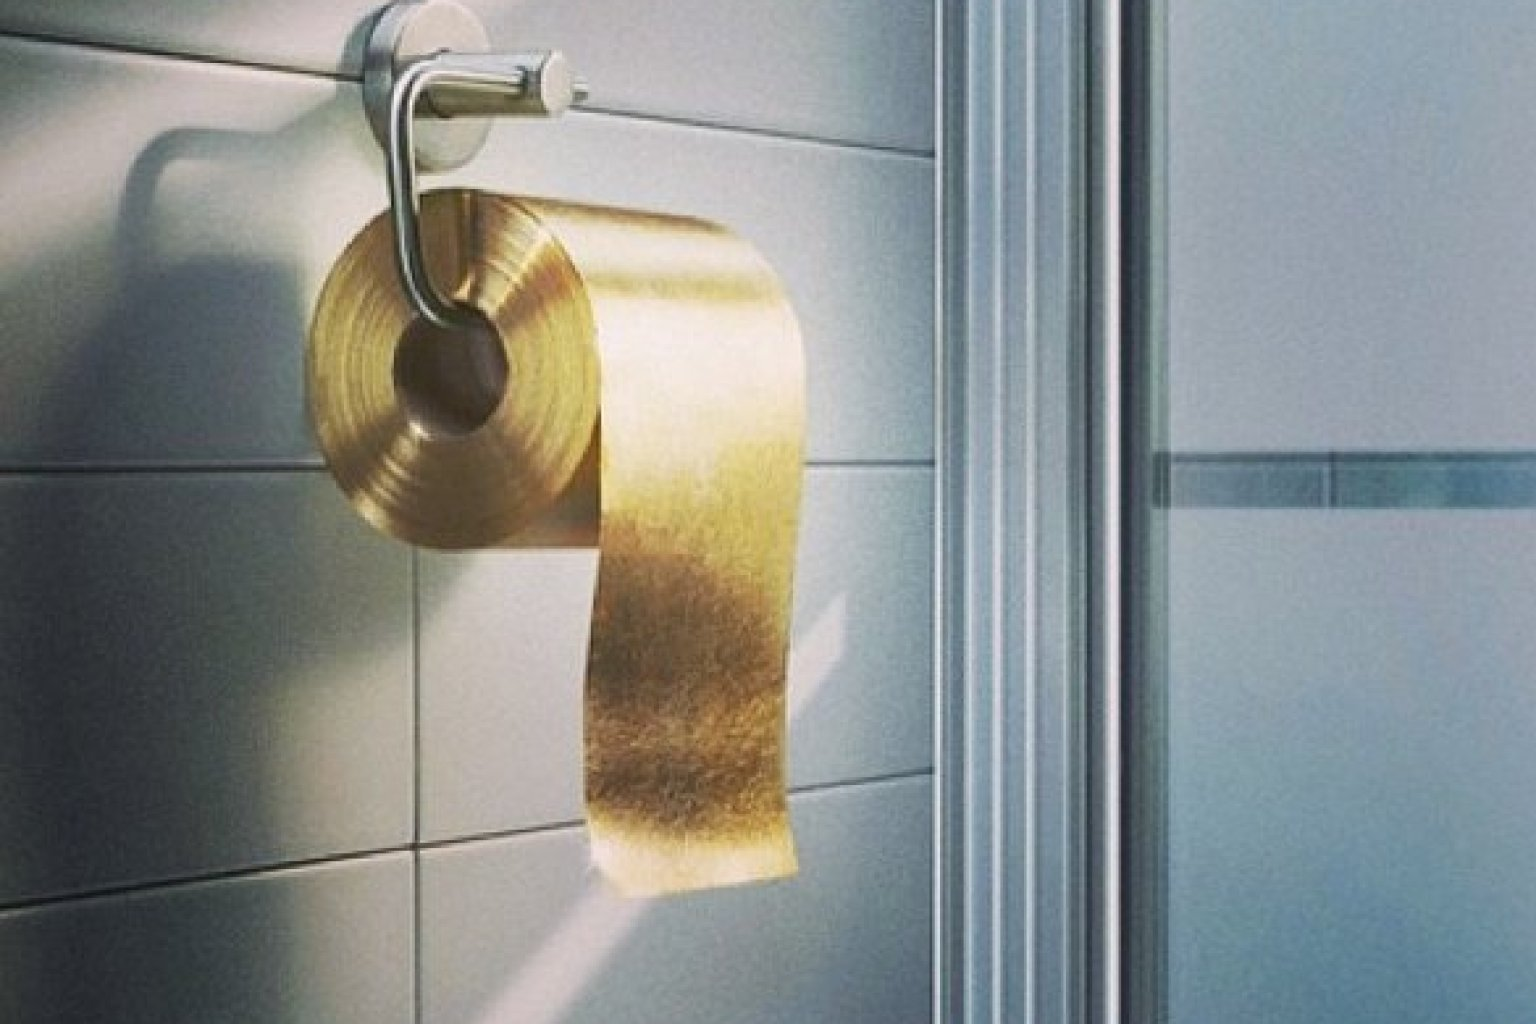 Coloured Toilet Paper Photo of Gold Toilet Paper